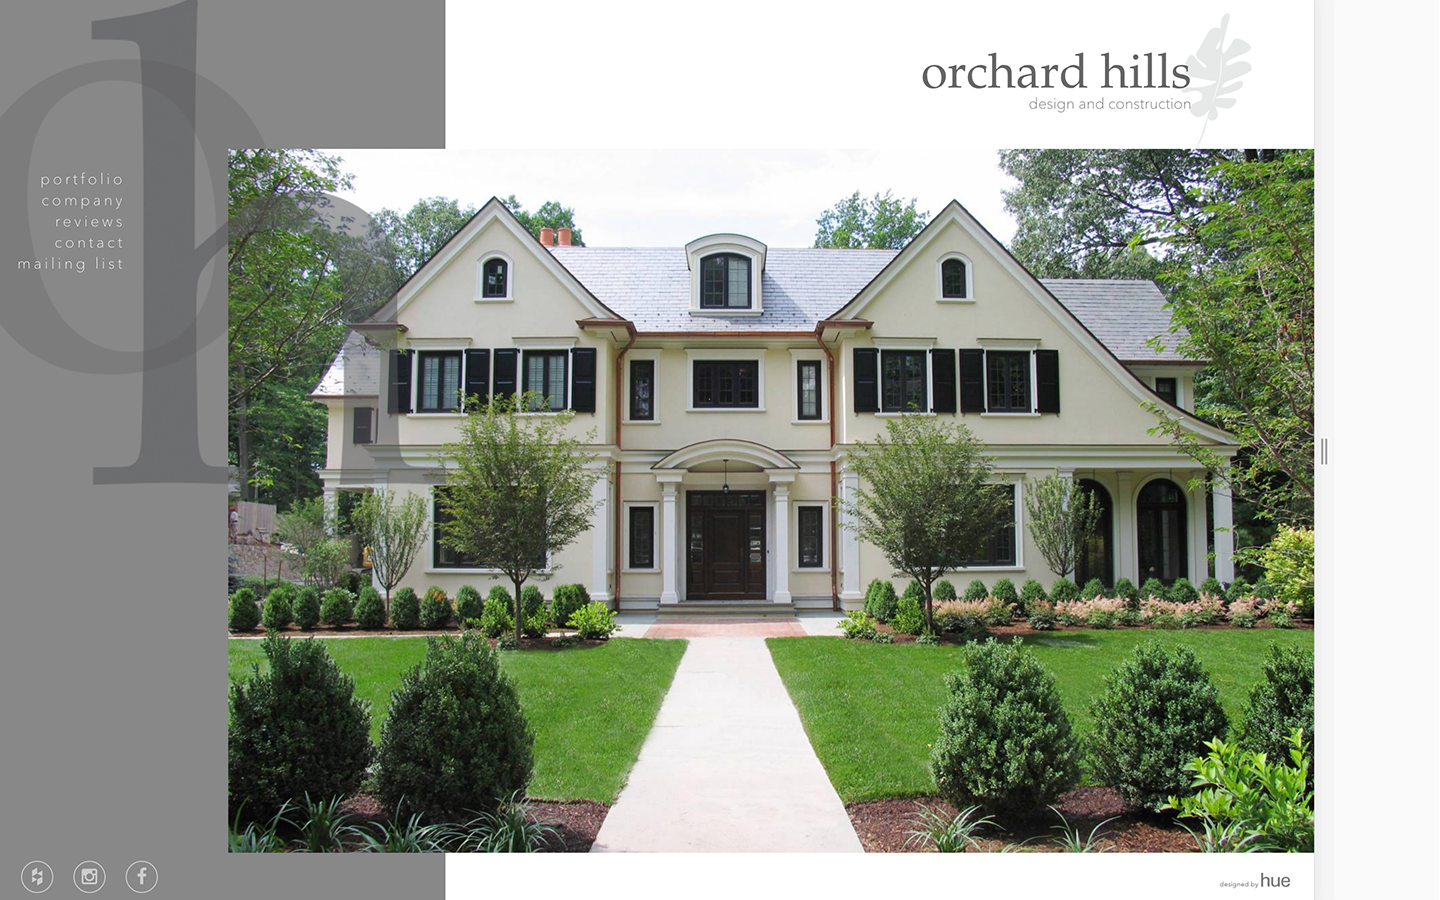 Orchard Hills Design and Construction